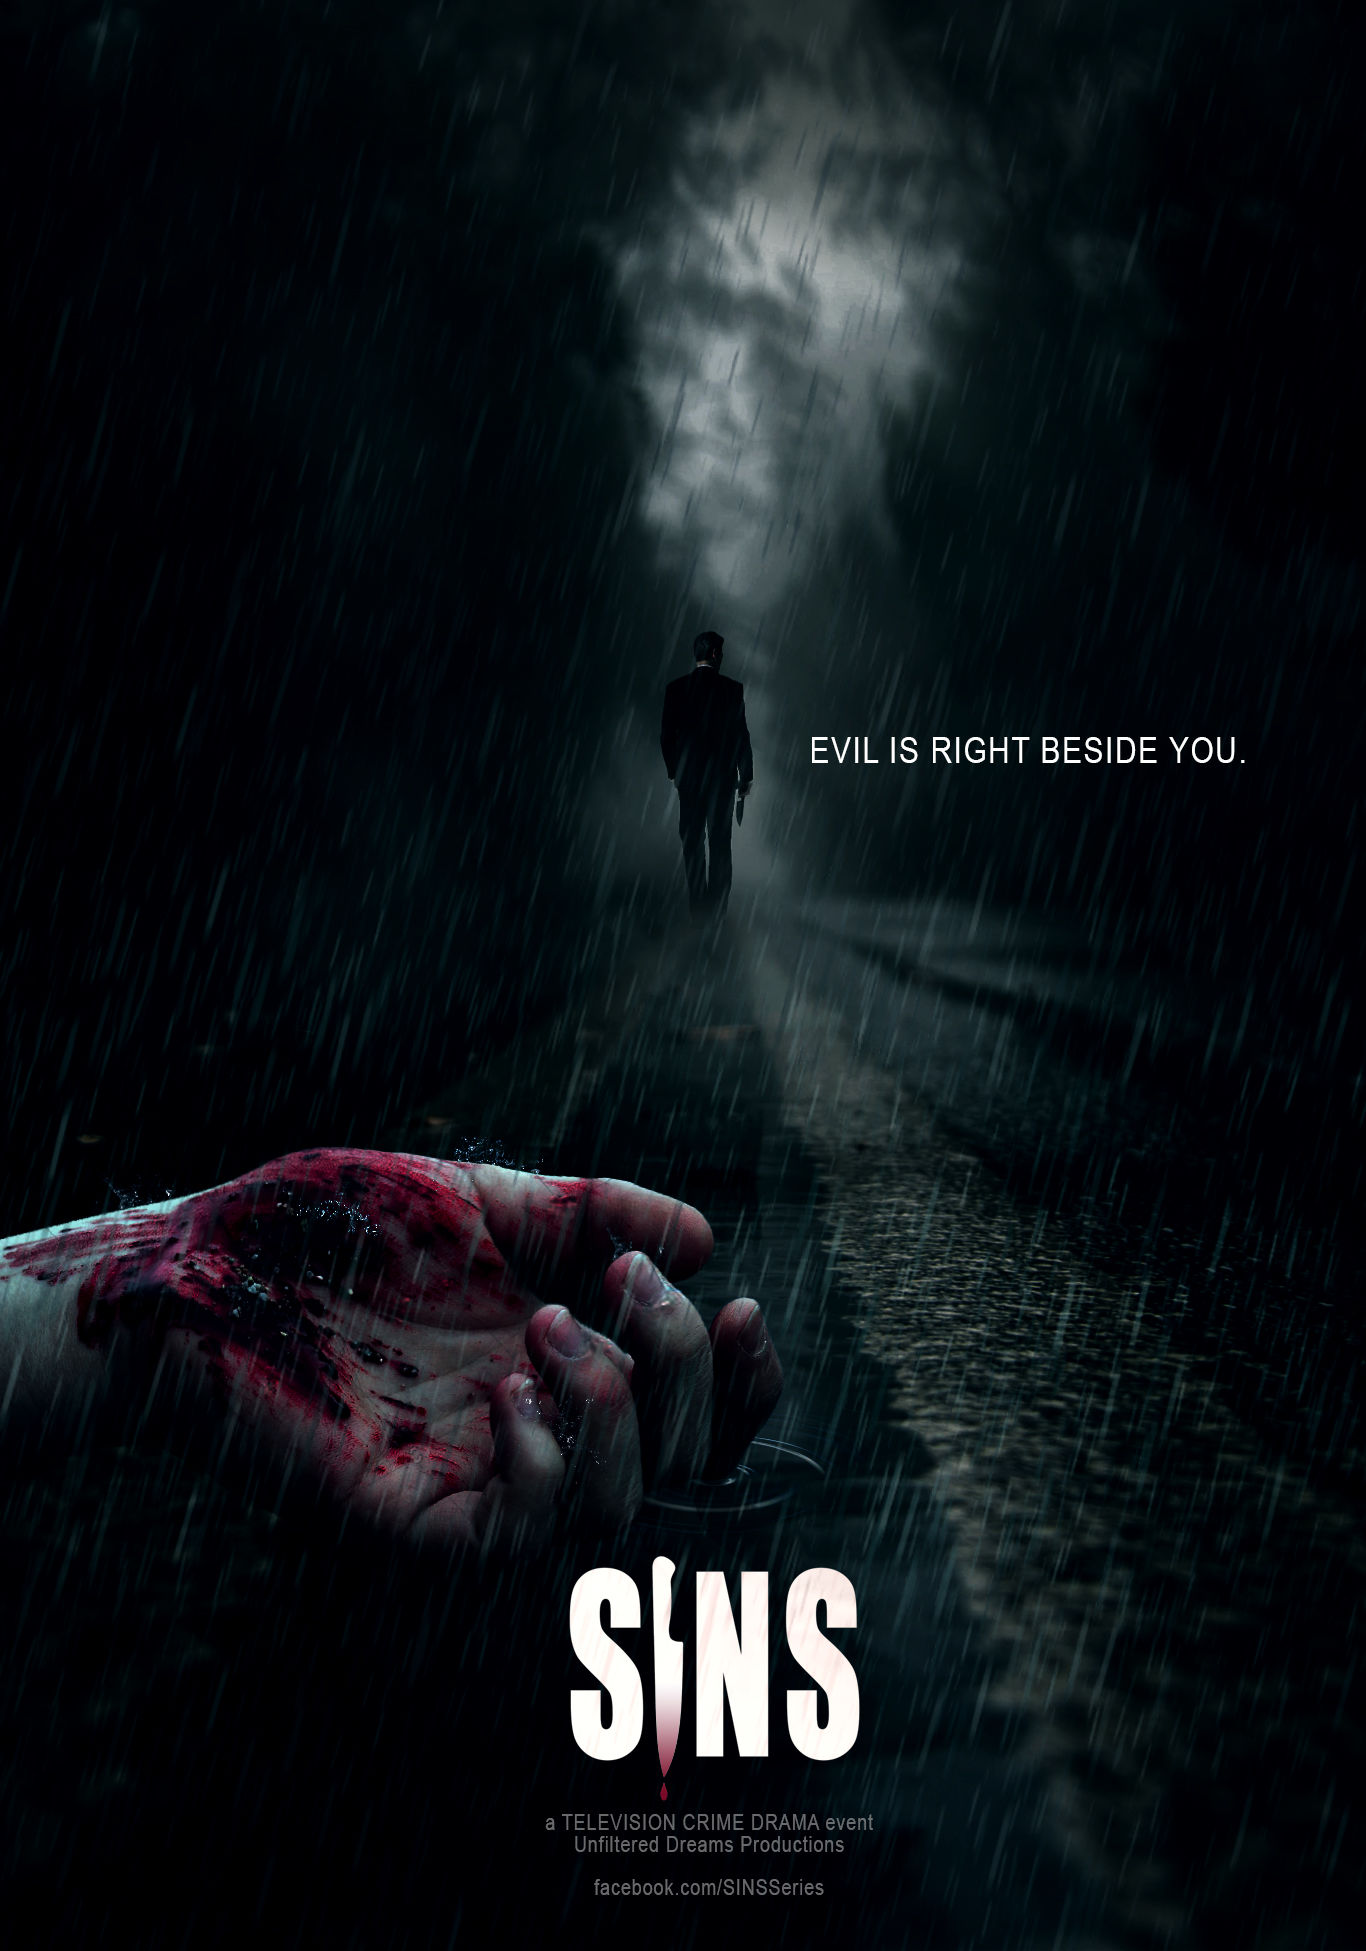 Sins - screenplay / logline added by Fancy Macelli - Stage 32